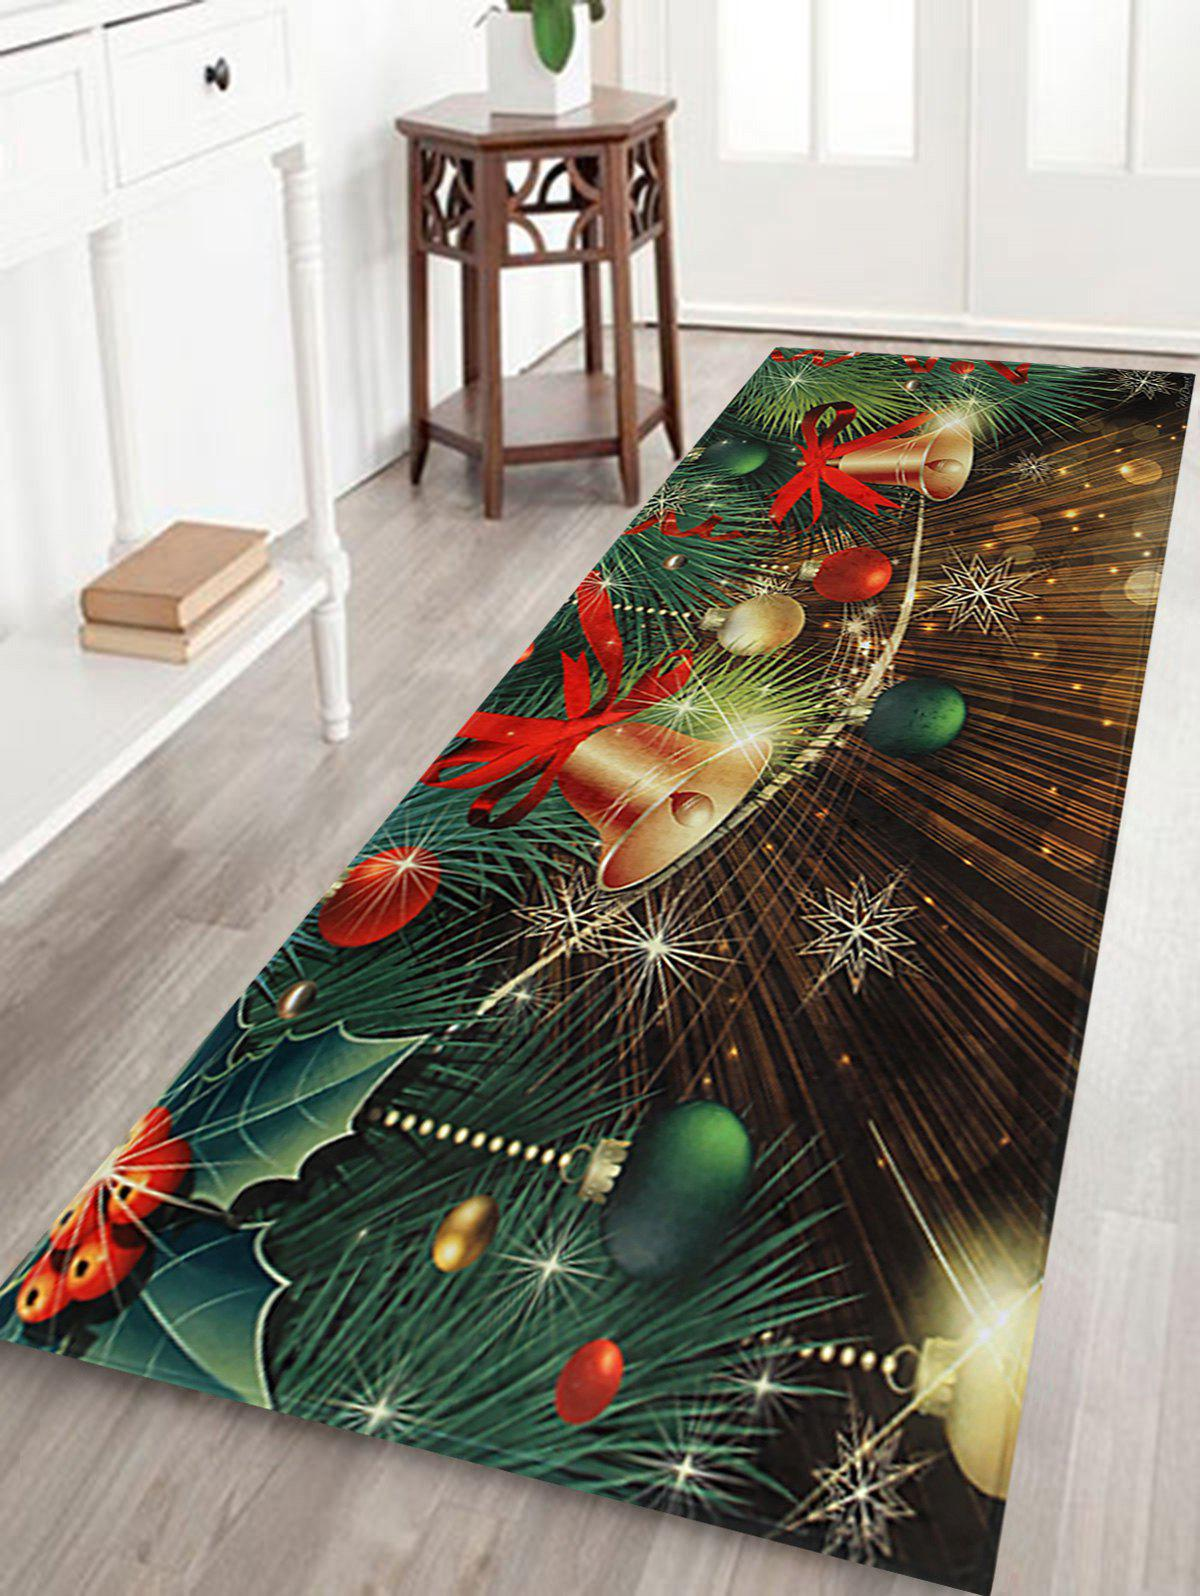 Christmas Bells Baubles Pattern Indoor Outdoor Area Rug - COLORMIX W16 INCH * L47 INCH